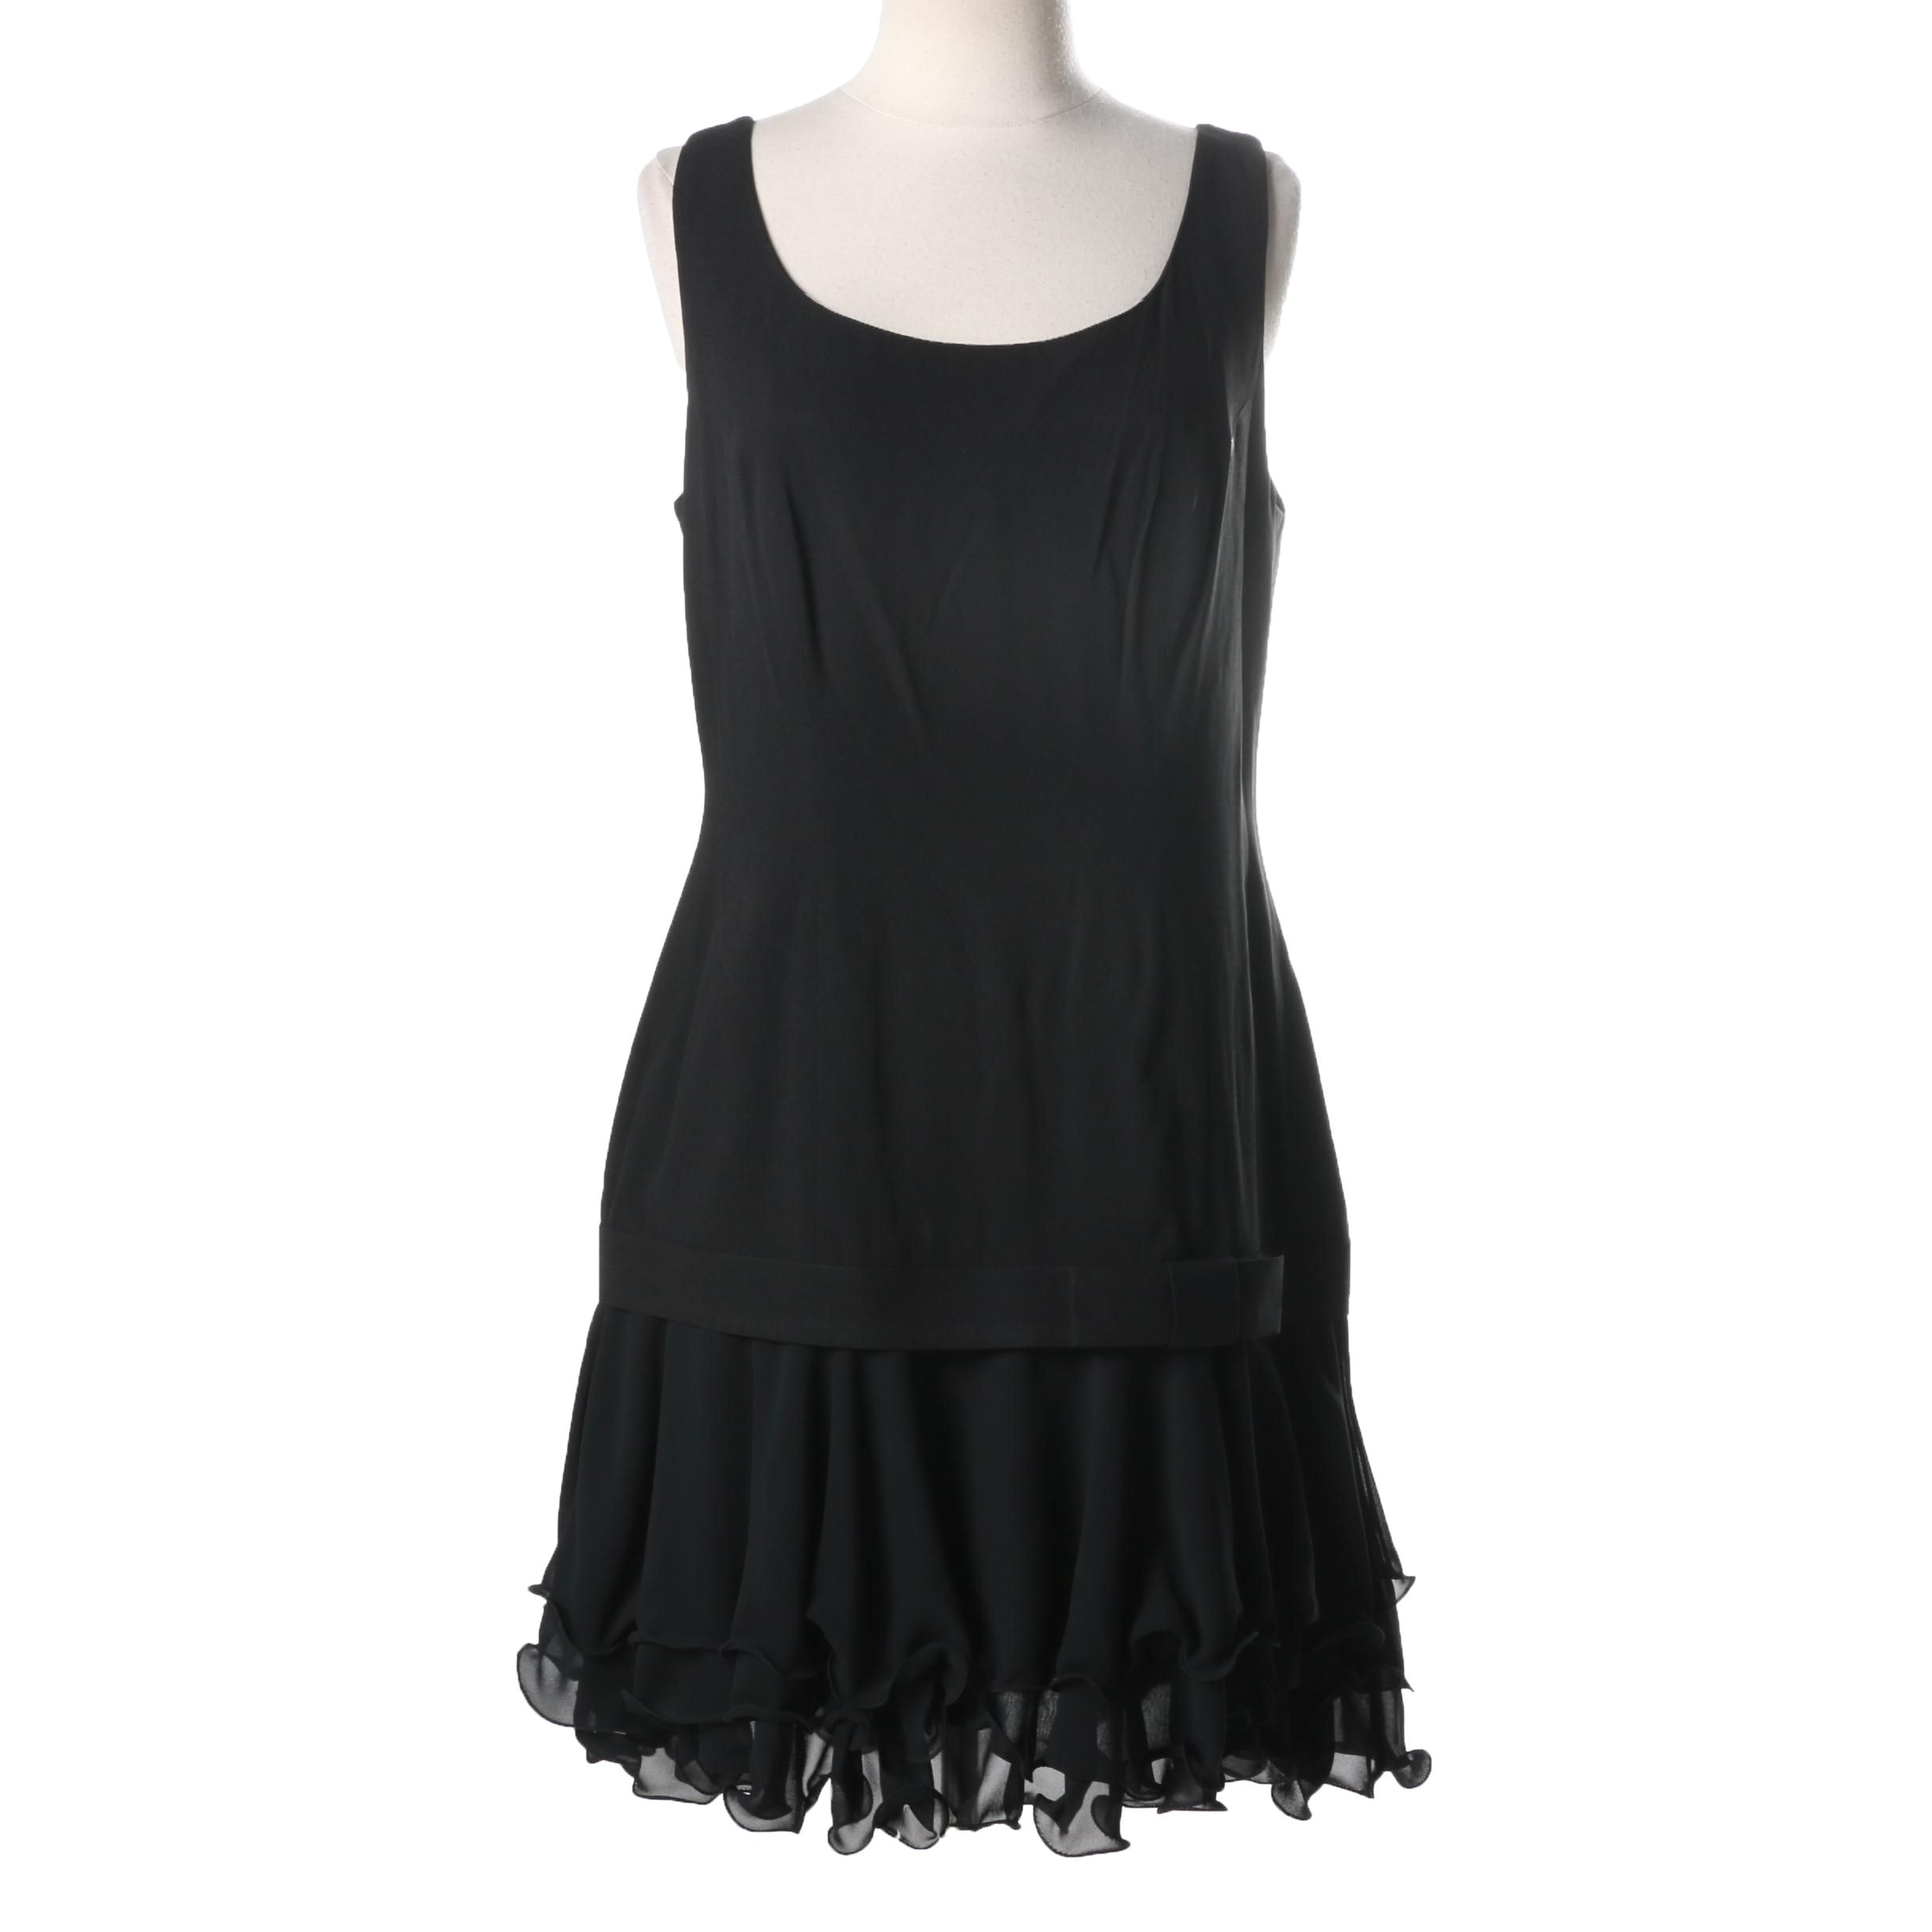 Mascara Black Cocktail Dress